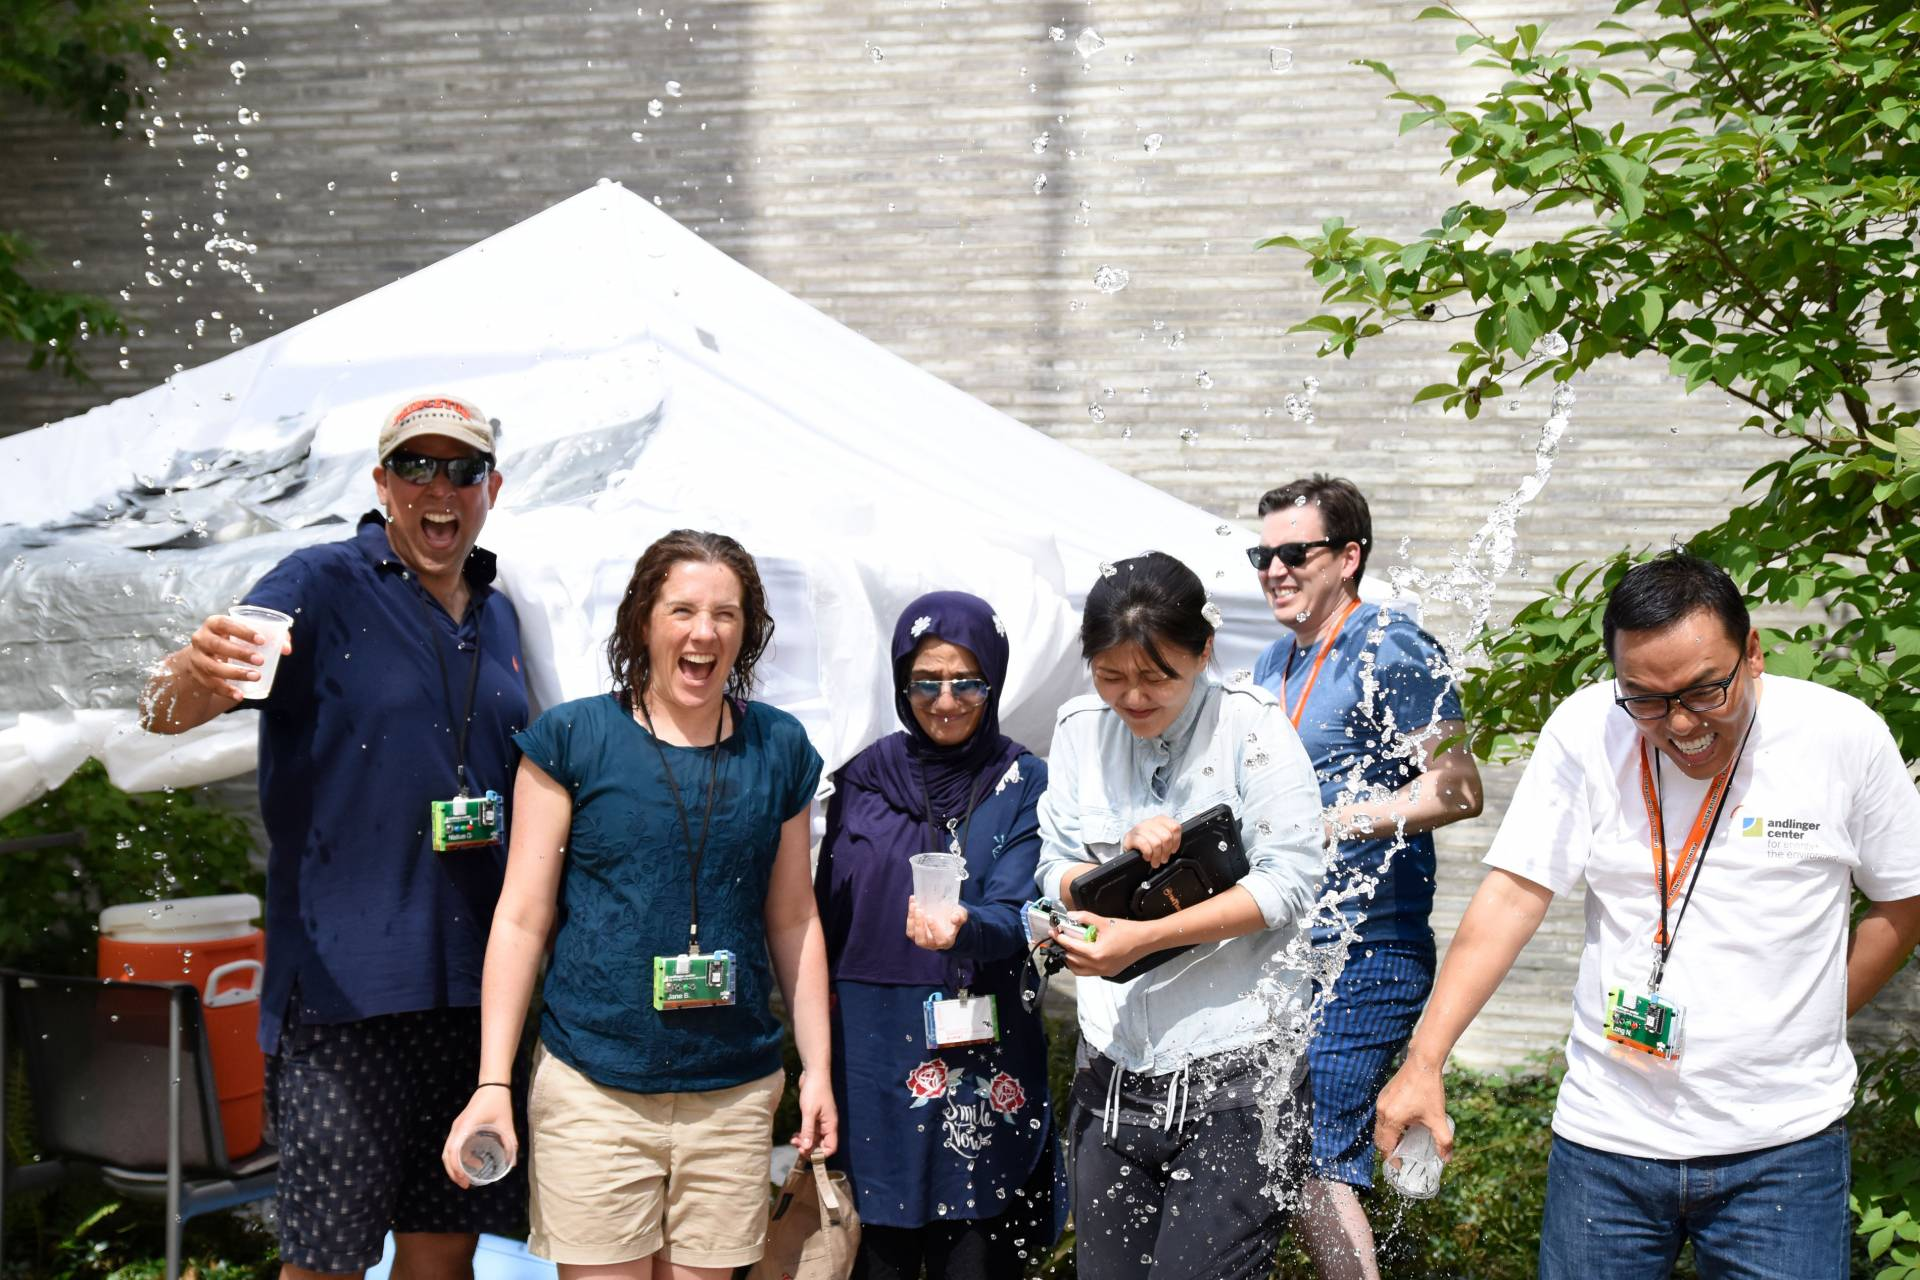 Andlinger Center Young Global Leaders pour water over themselves